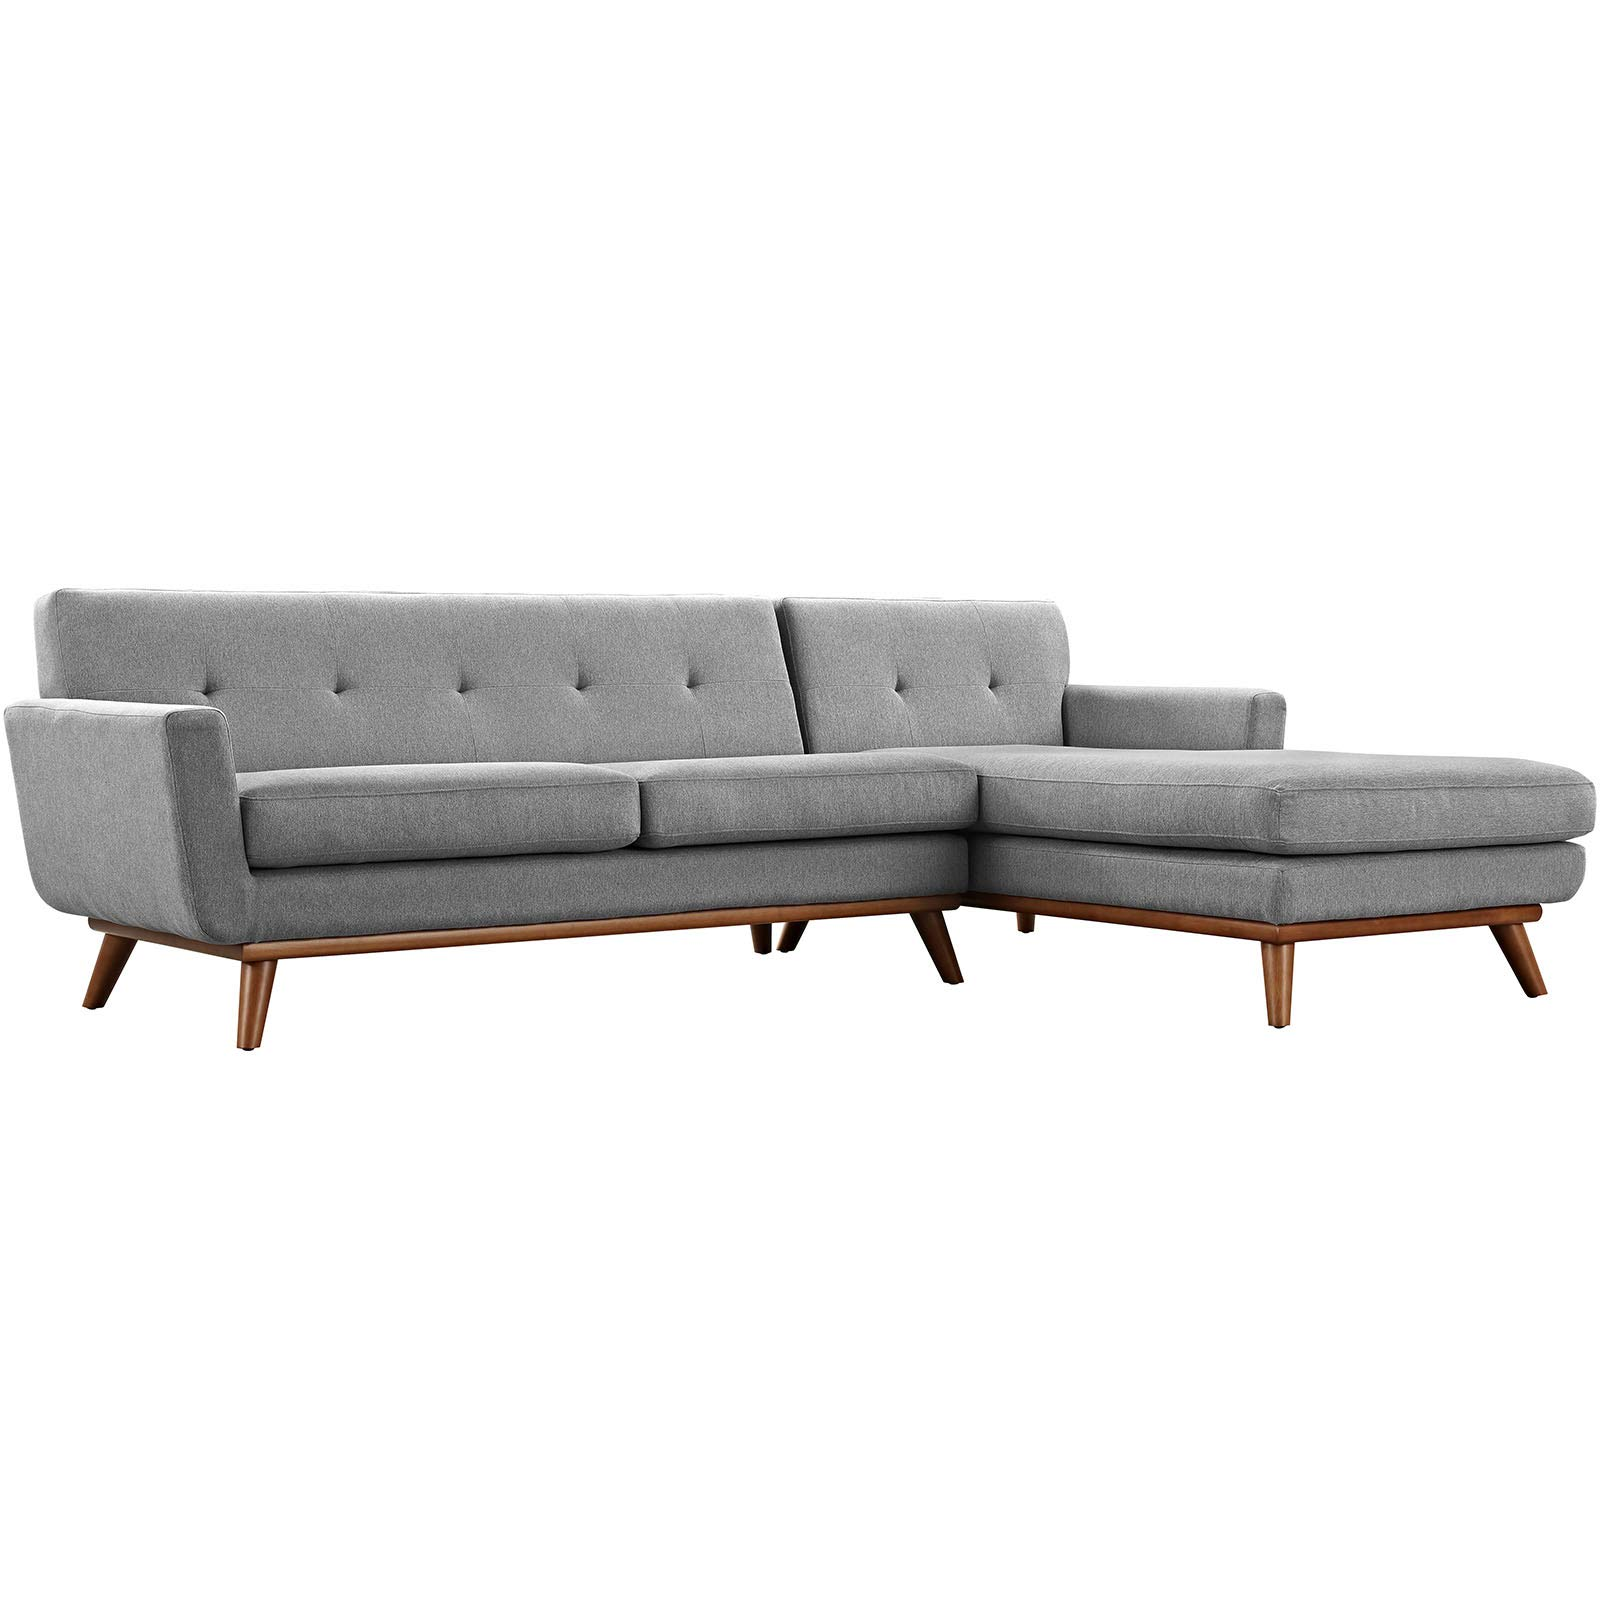 Modway Engage Mid-Century Modern Upholstered Fabric Right-Facing Sectional Sofa in Expectation Gray by Modway